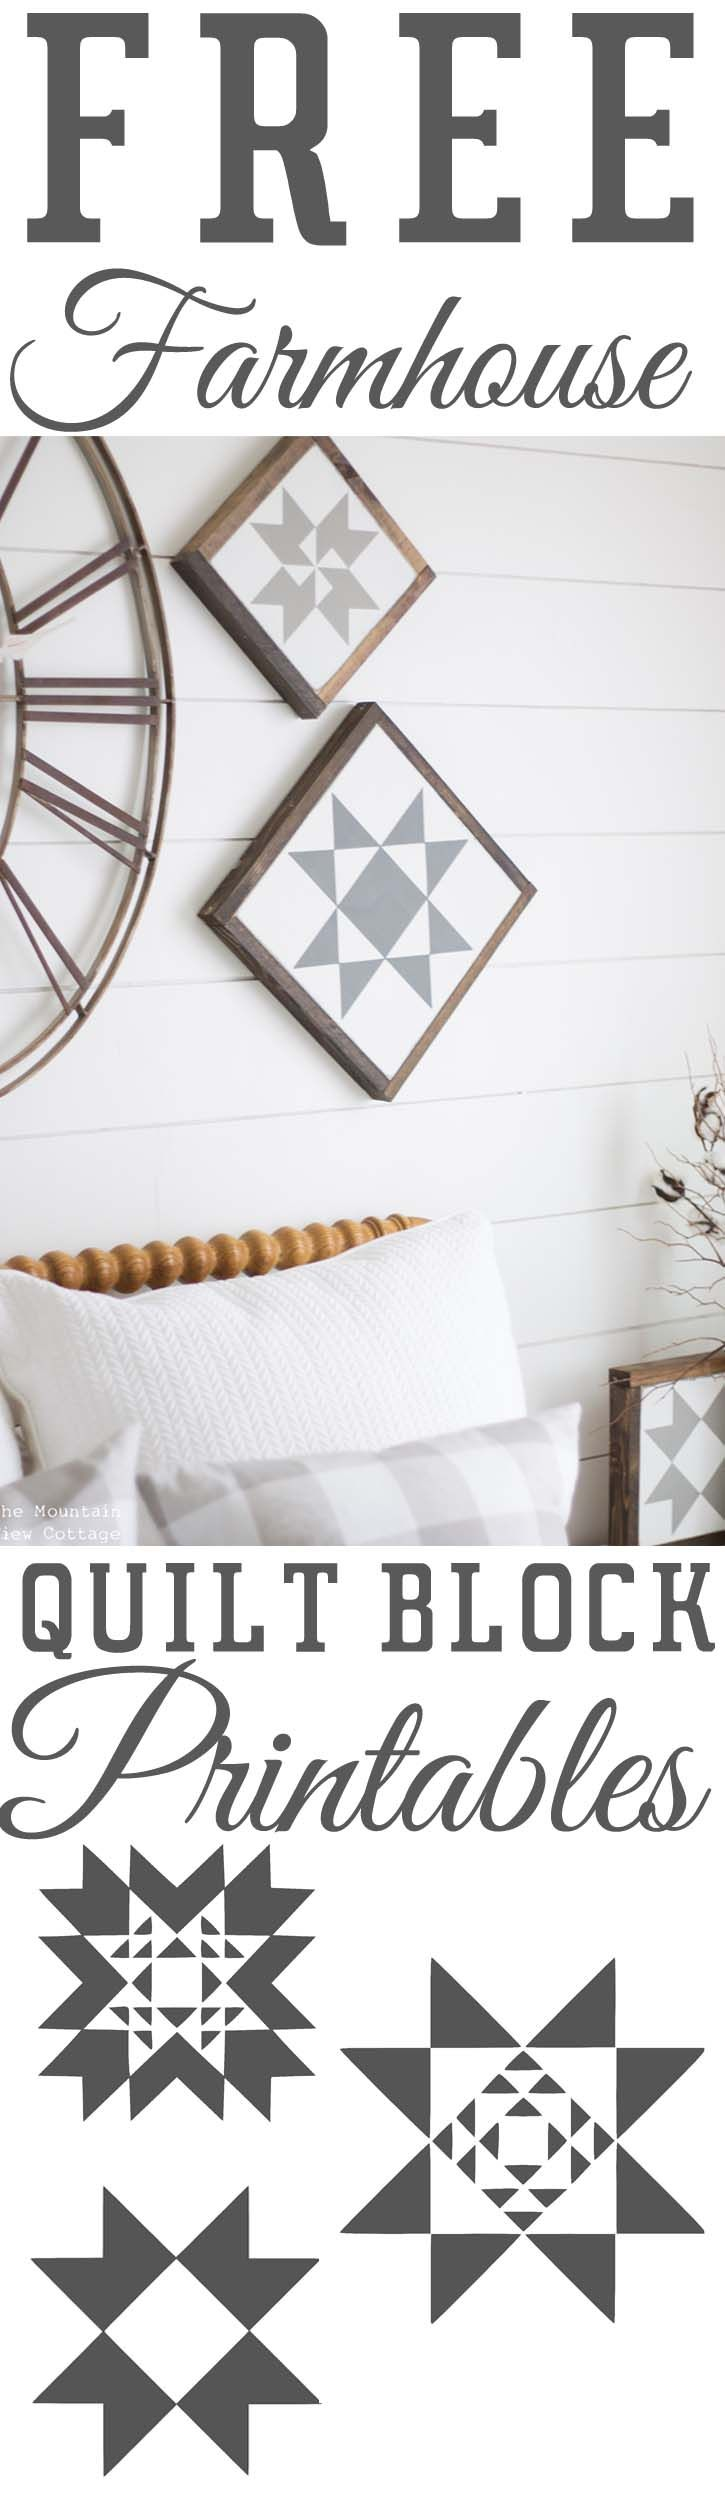 Free Farmhouse Printables Quilt Block Stars — The Mountain View Cottage